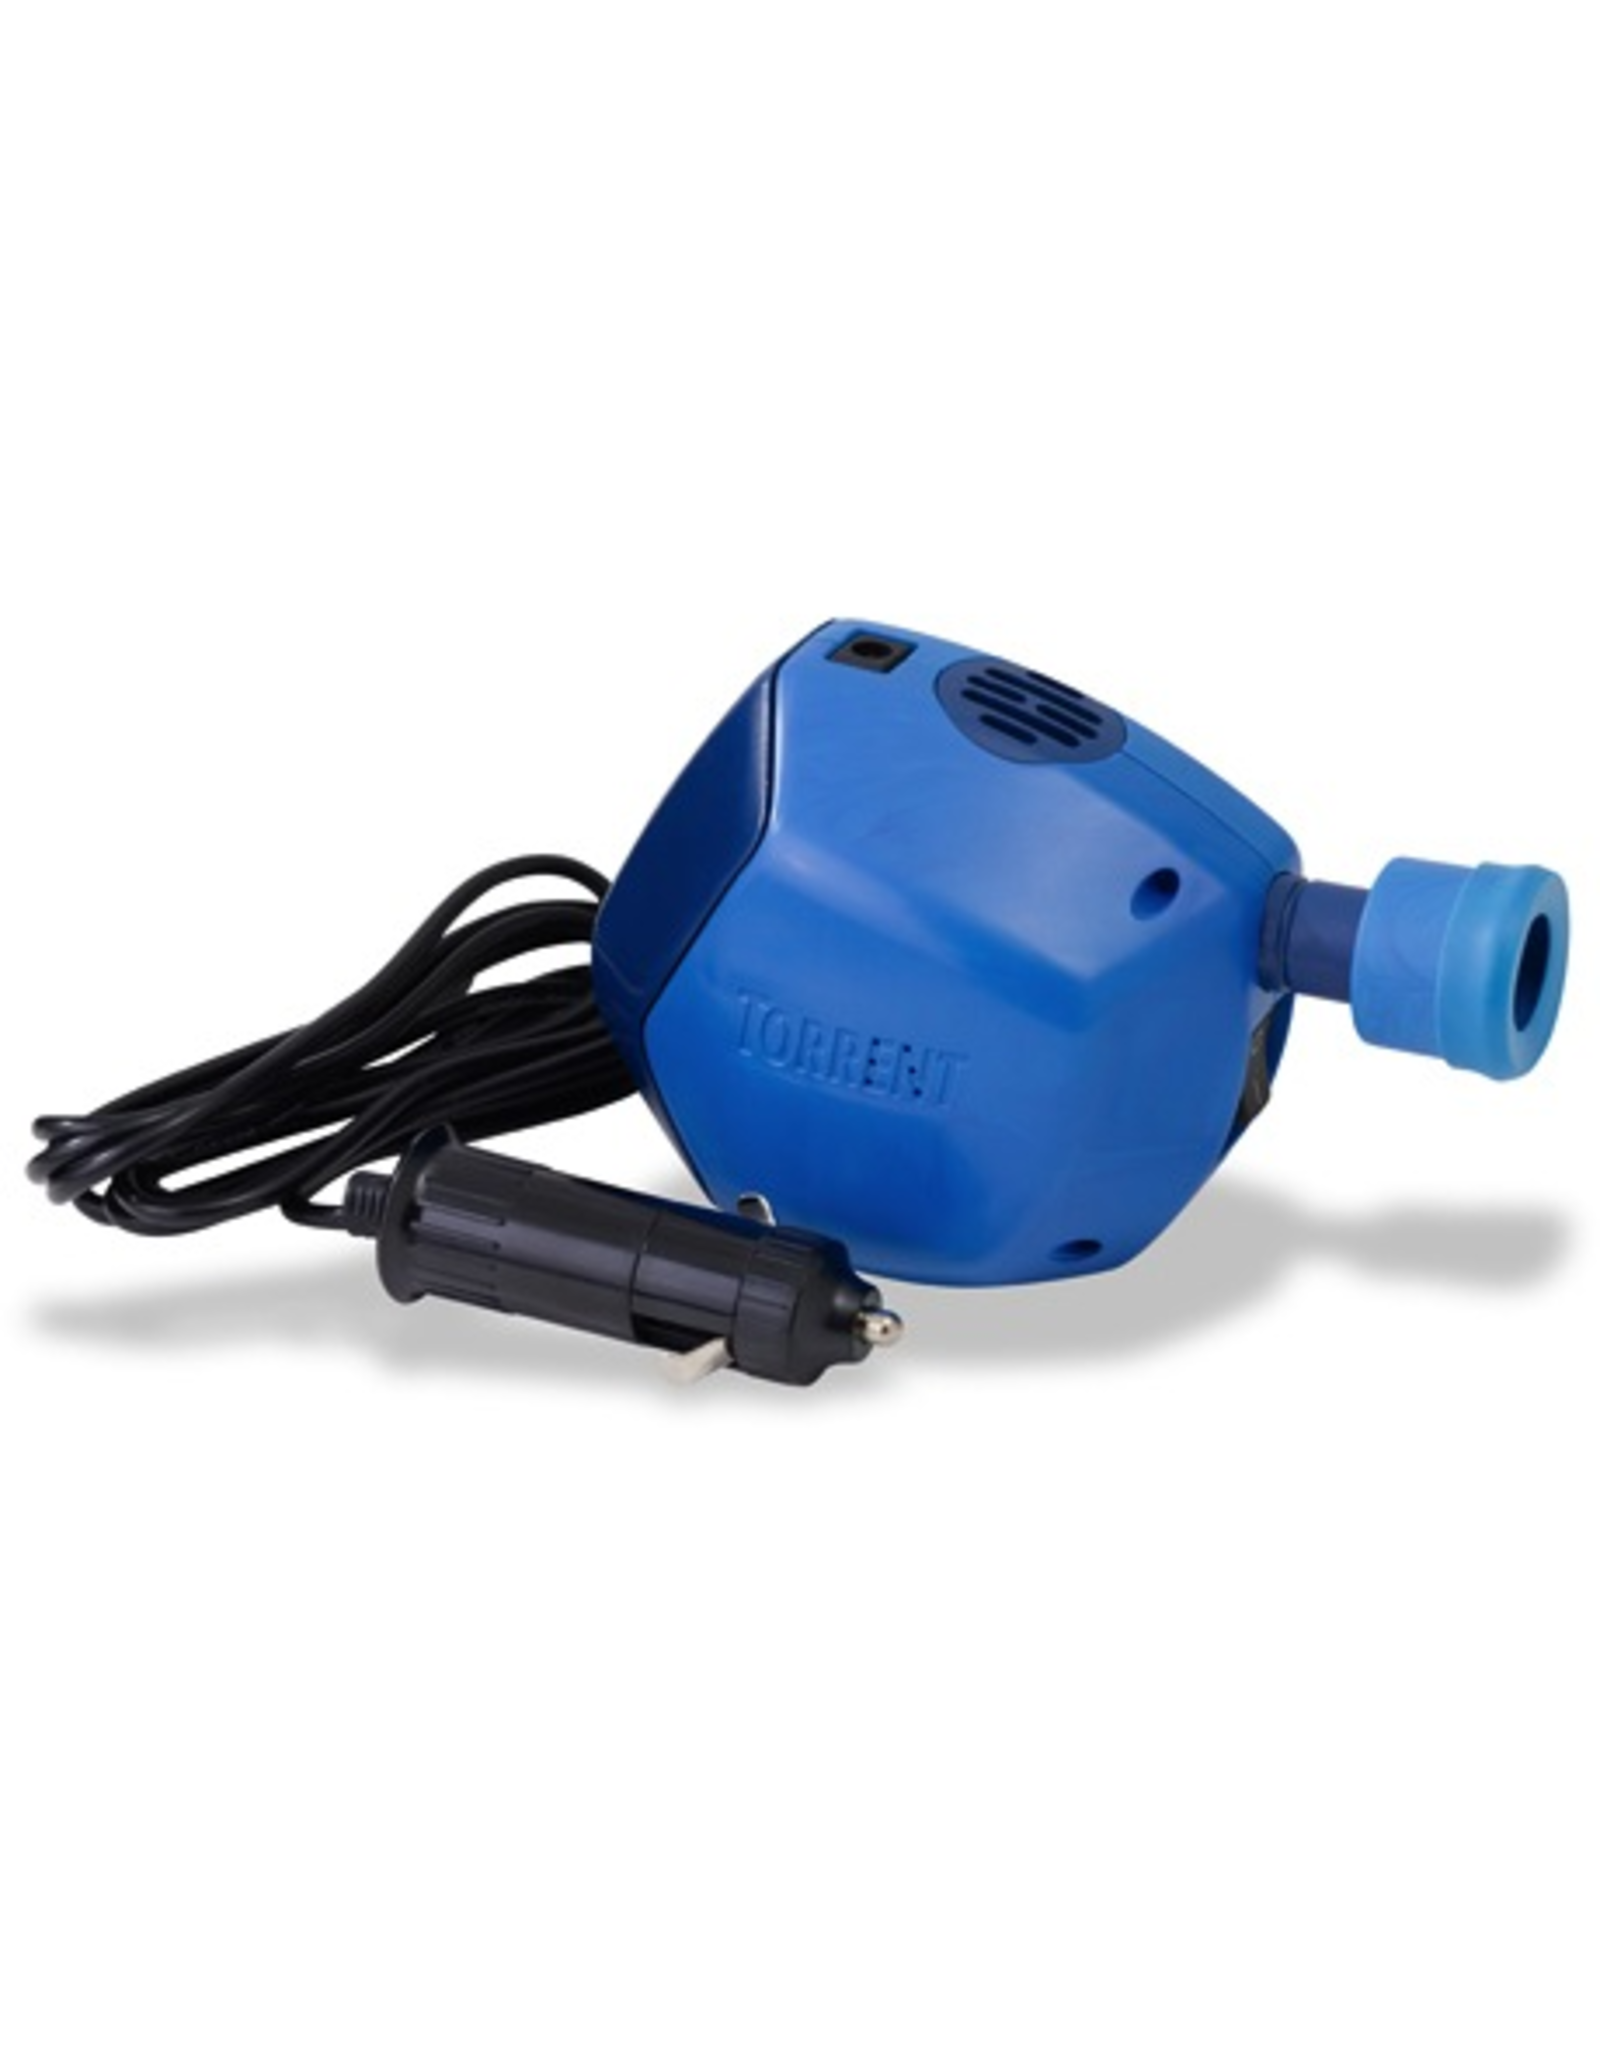 Thermarest Thermarest NeoAir Torrent Air Pump